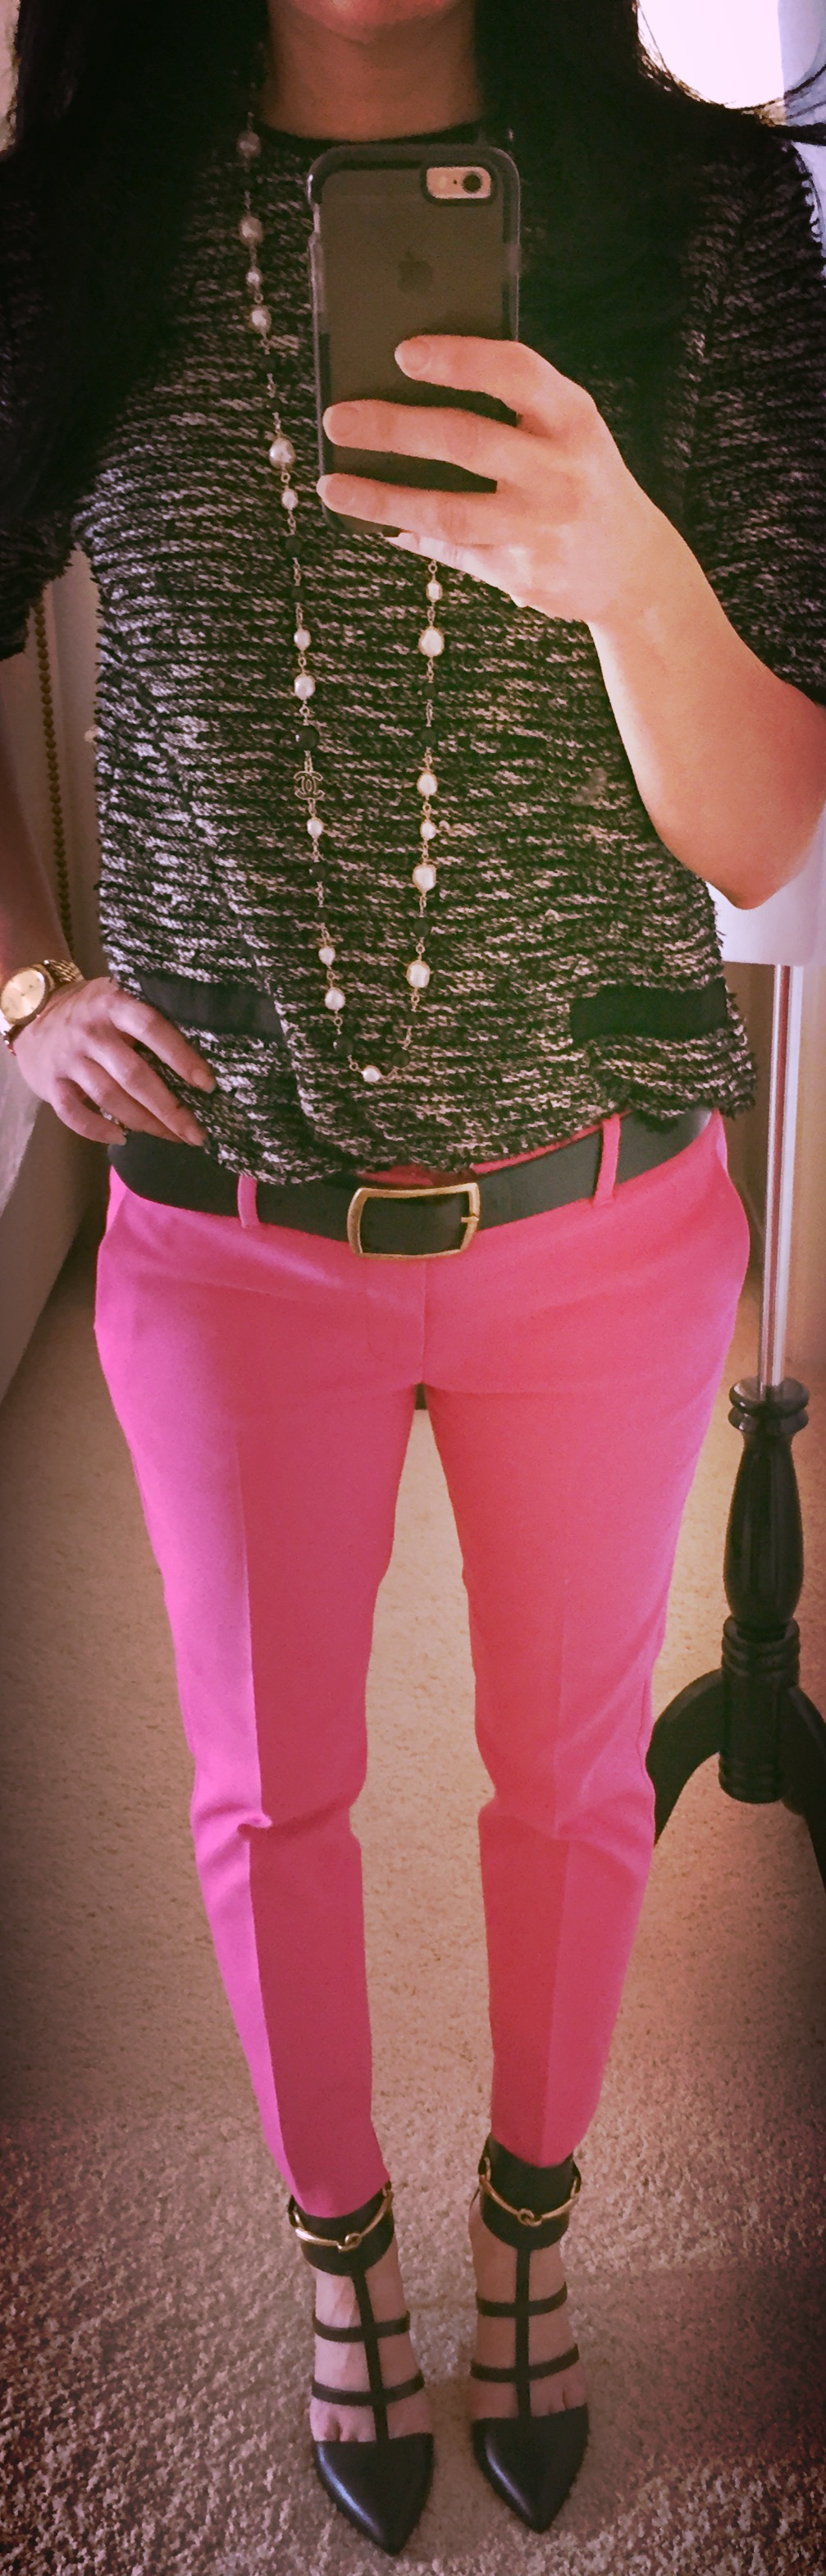 July 22, Pink trousers!